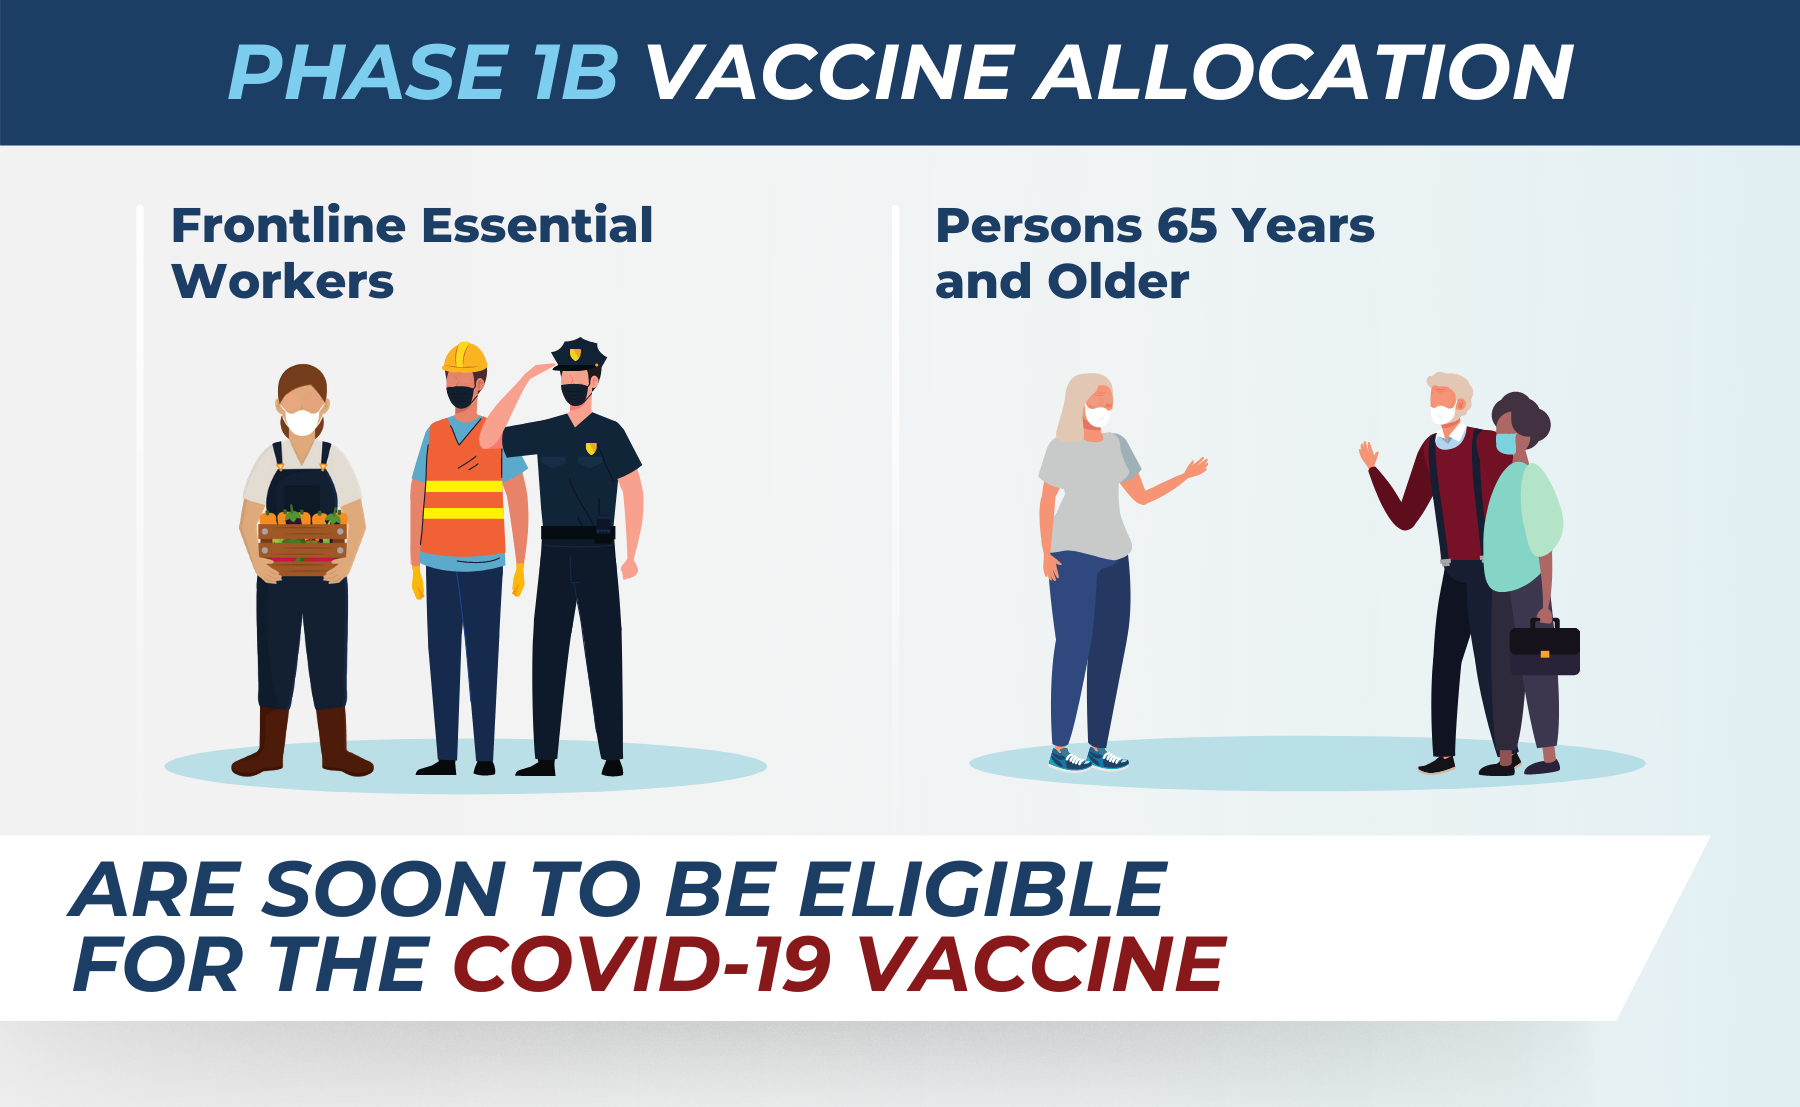 Vaccination Allocation - Phase 1B - Soon to be eligible. Frontline essential workers and persons 65 years and older.